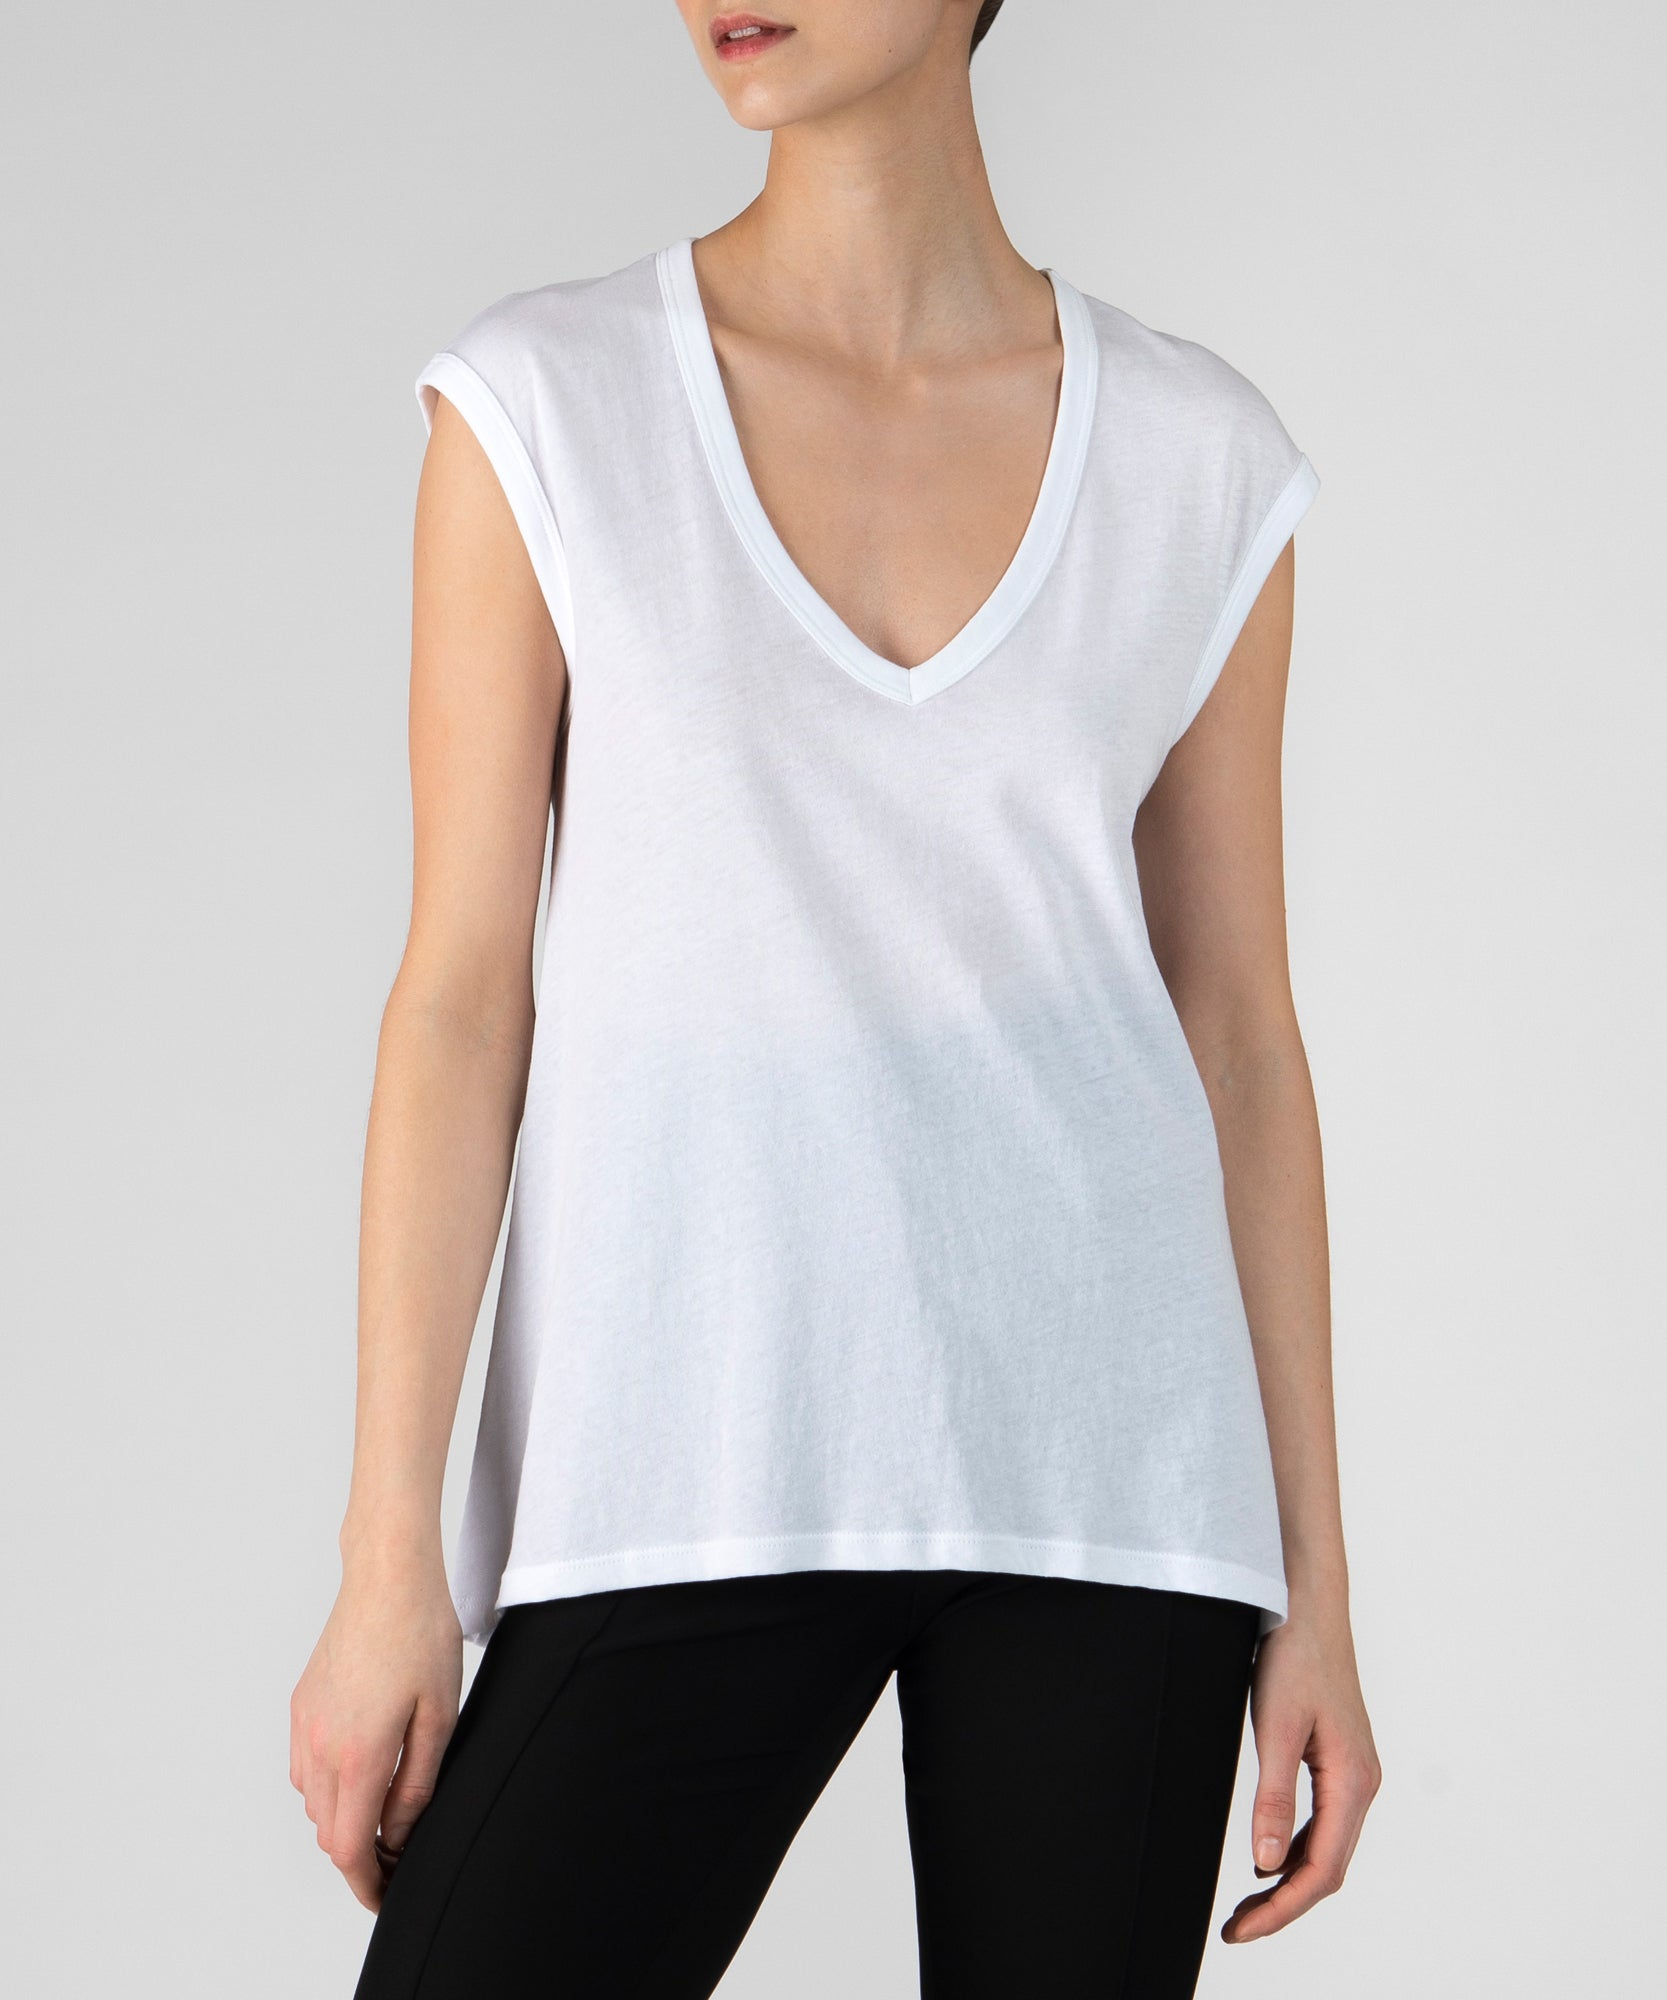 White Vintage Jersey Sleeveless Tee - Women's Luxe Top by ATM Anthony Thomas Melillo